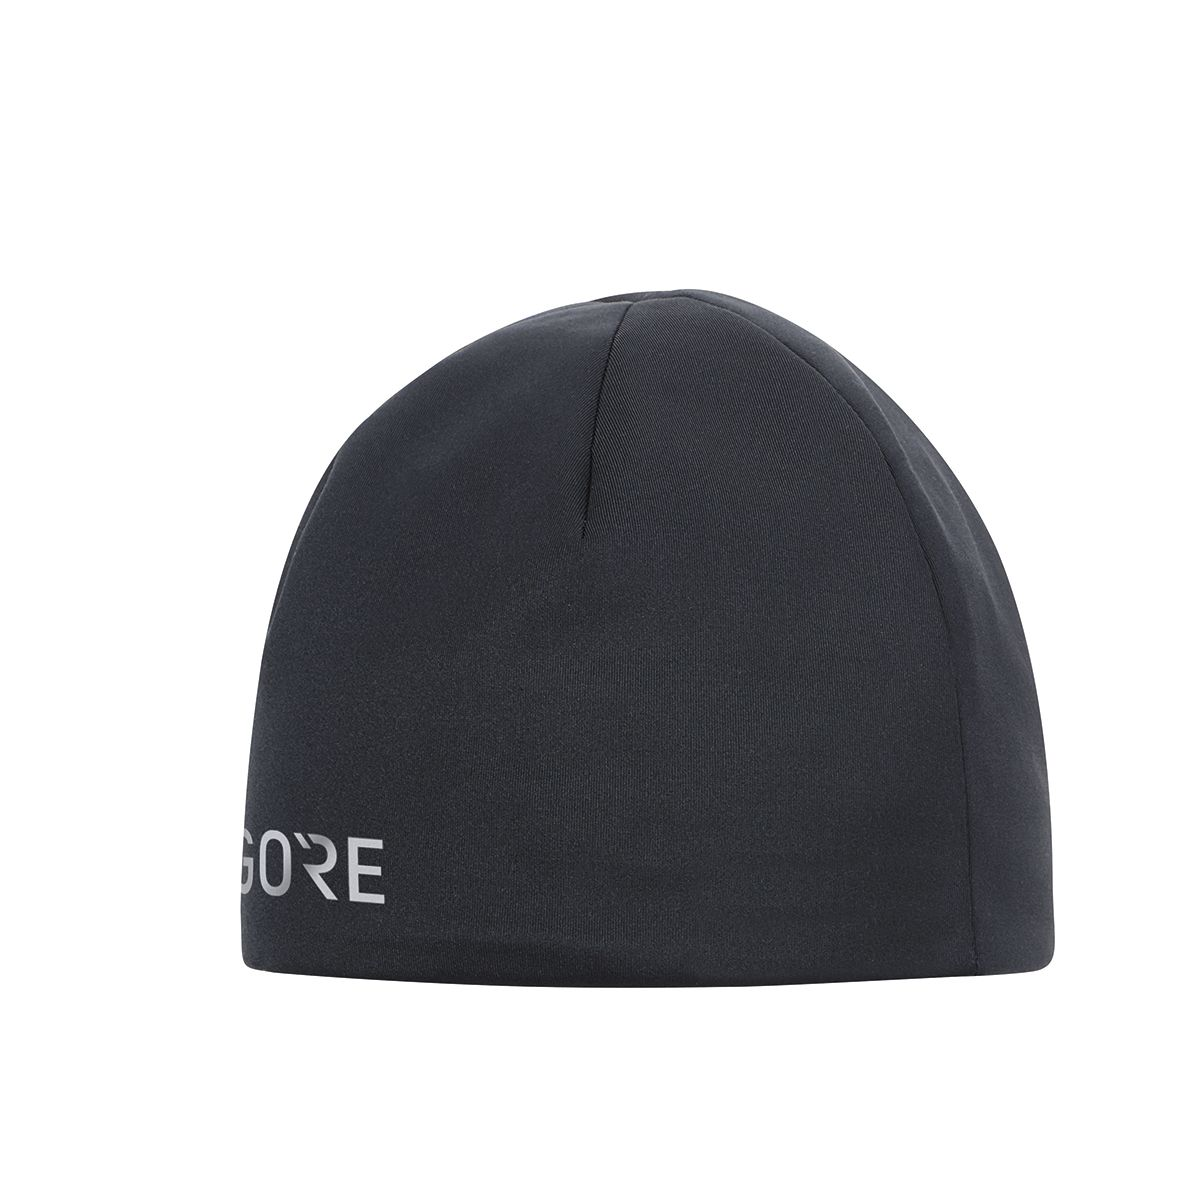 GORE WEAR M GORE WINDSTOPPER INSULATED BEANIE | Headwear